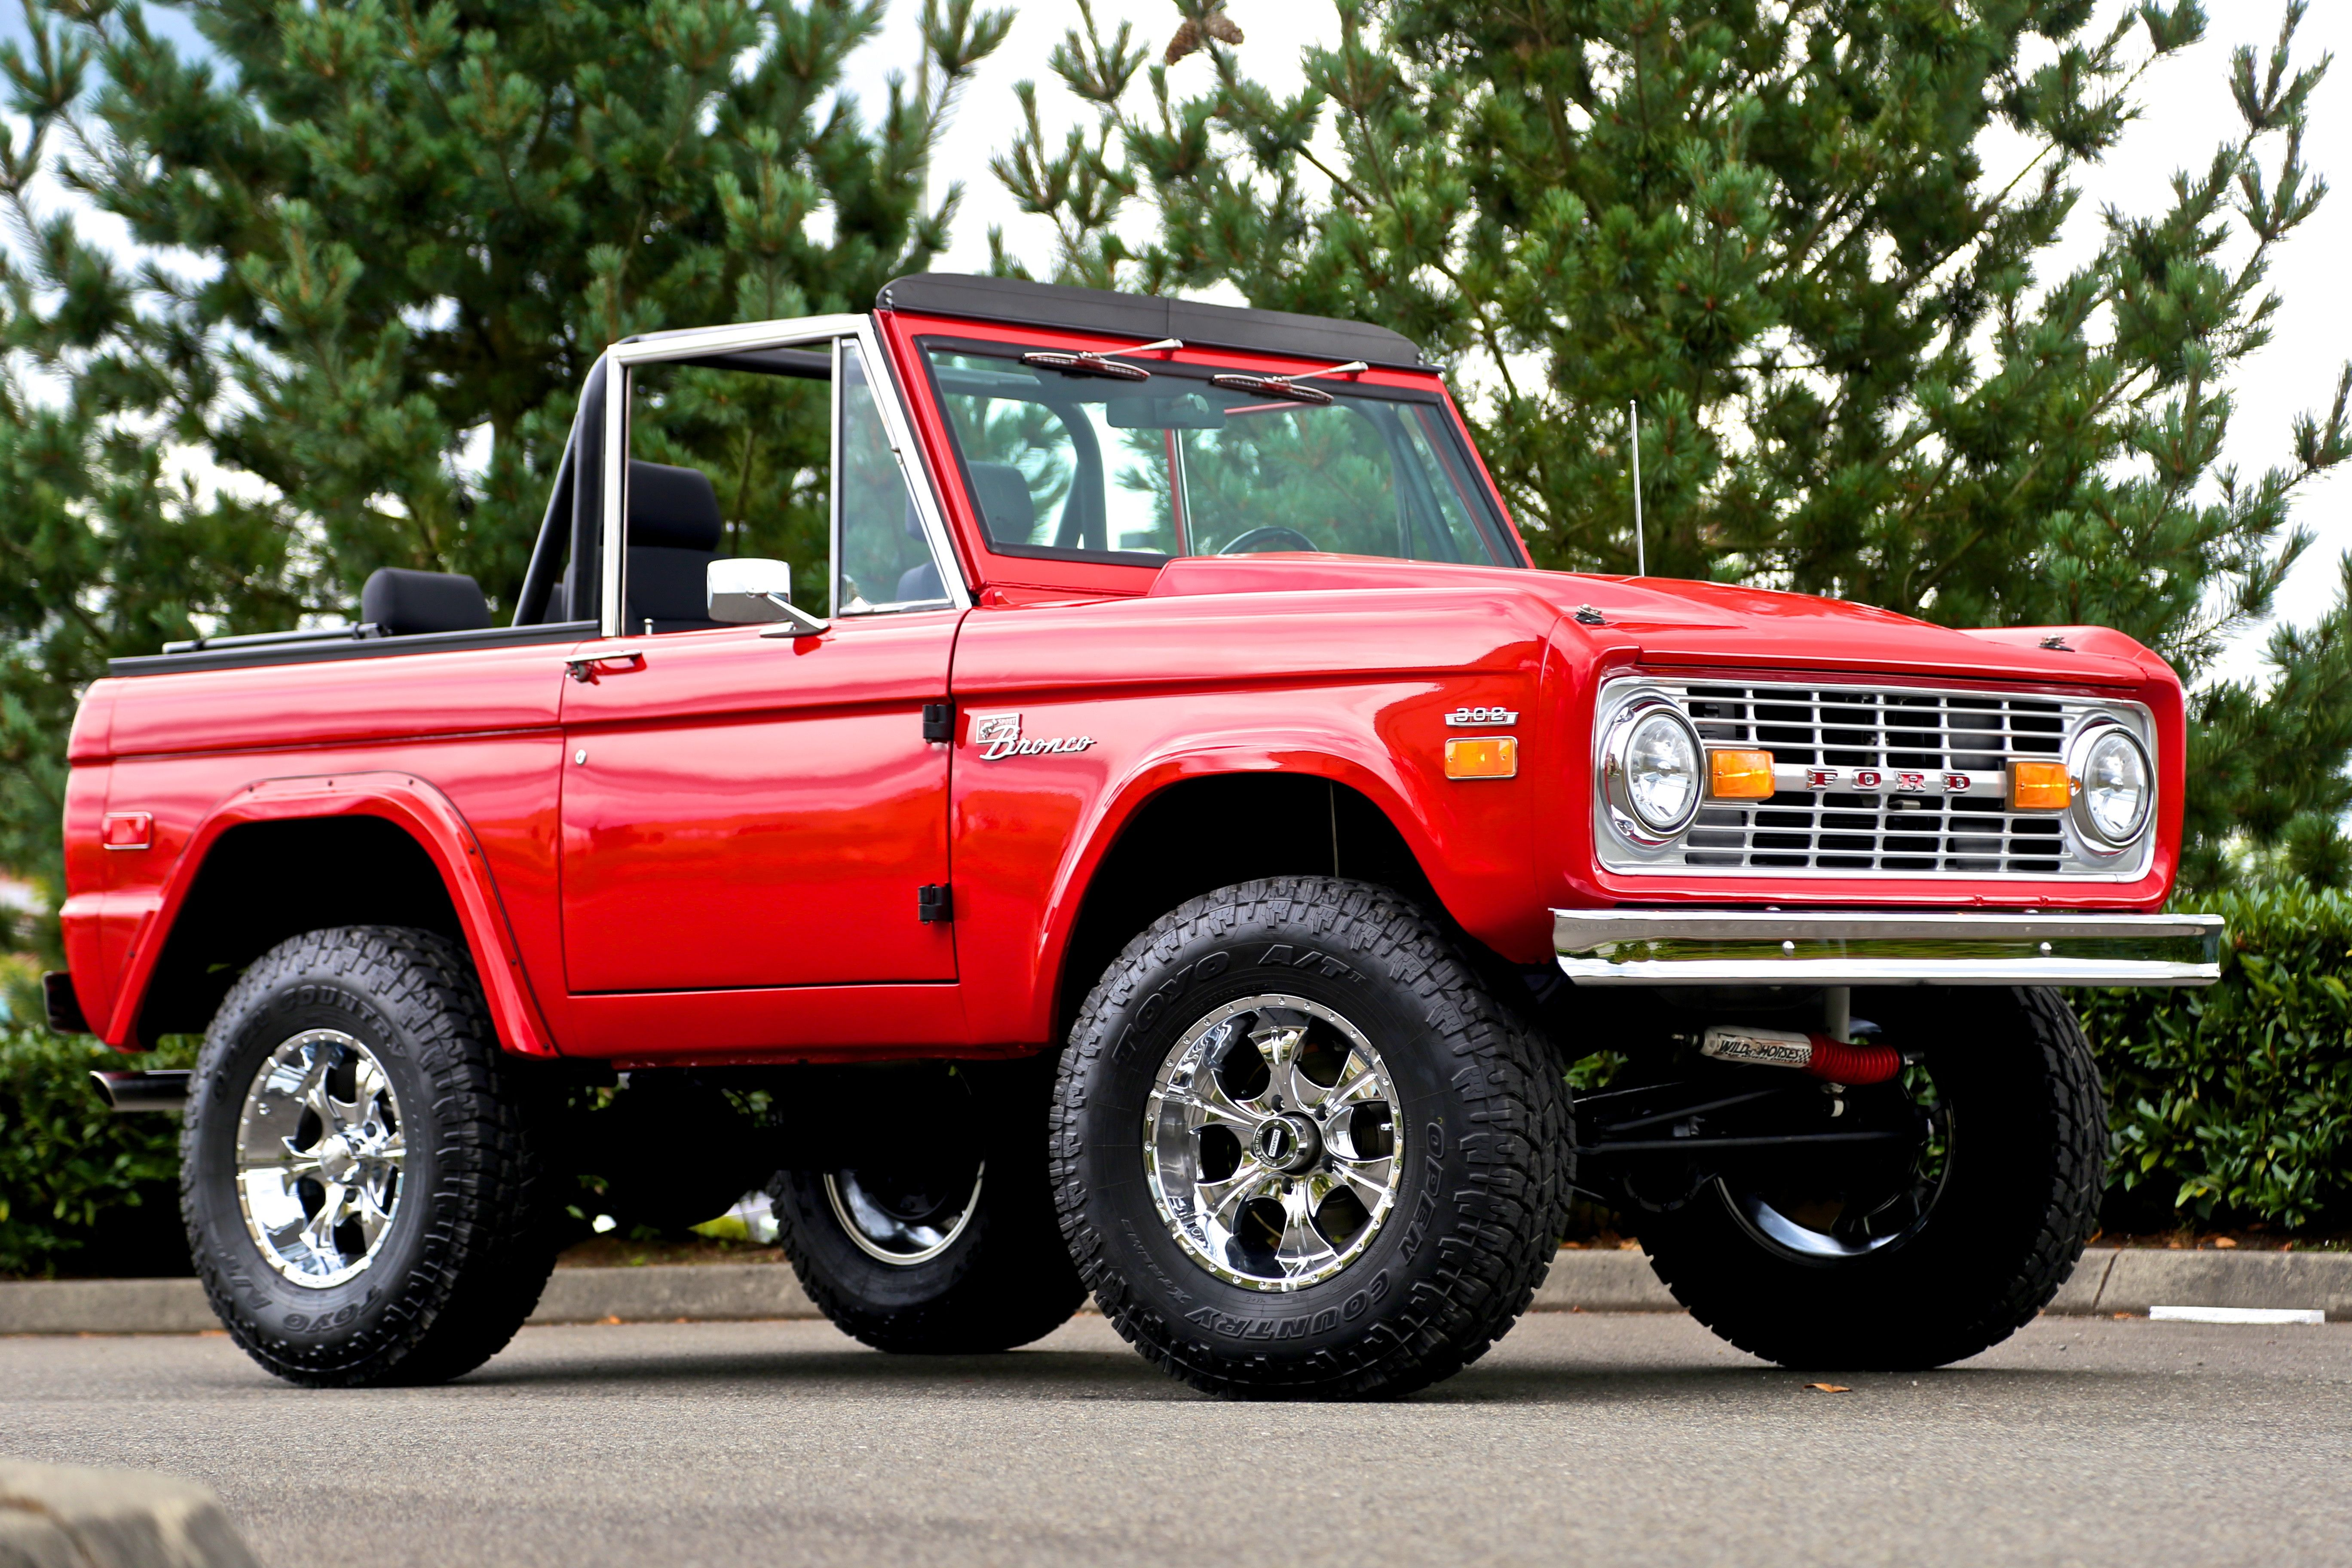 Viper Red Bronco W Stock Bumpers Ford Bronco Classic Bronco Bronco